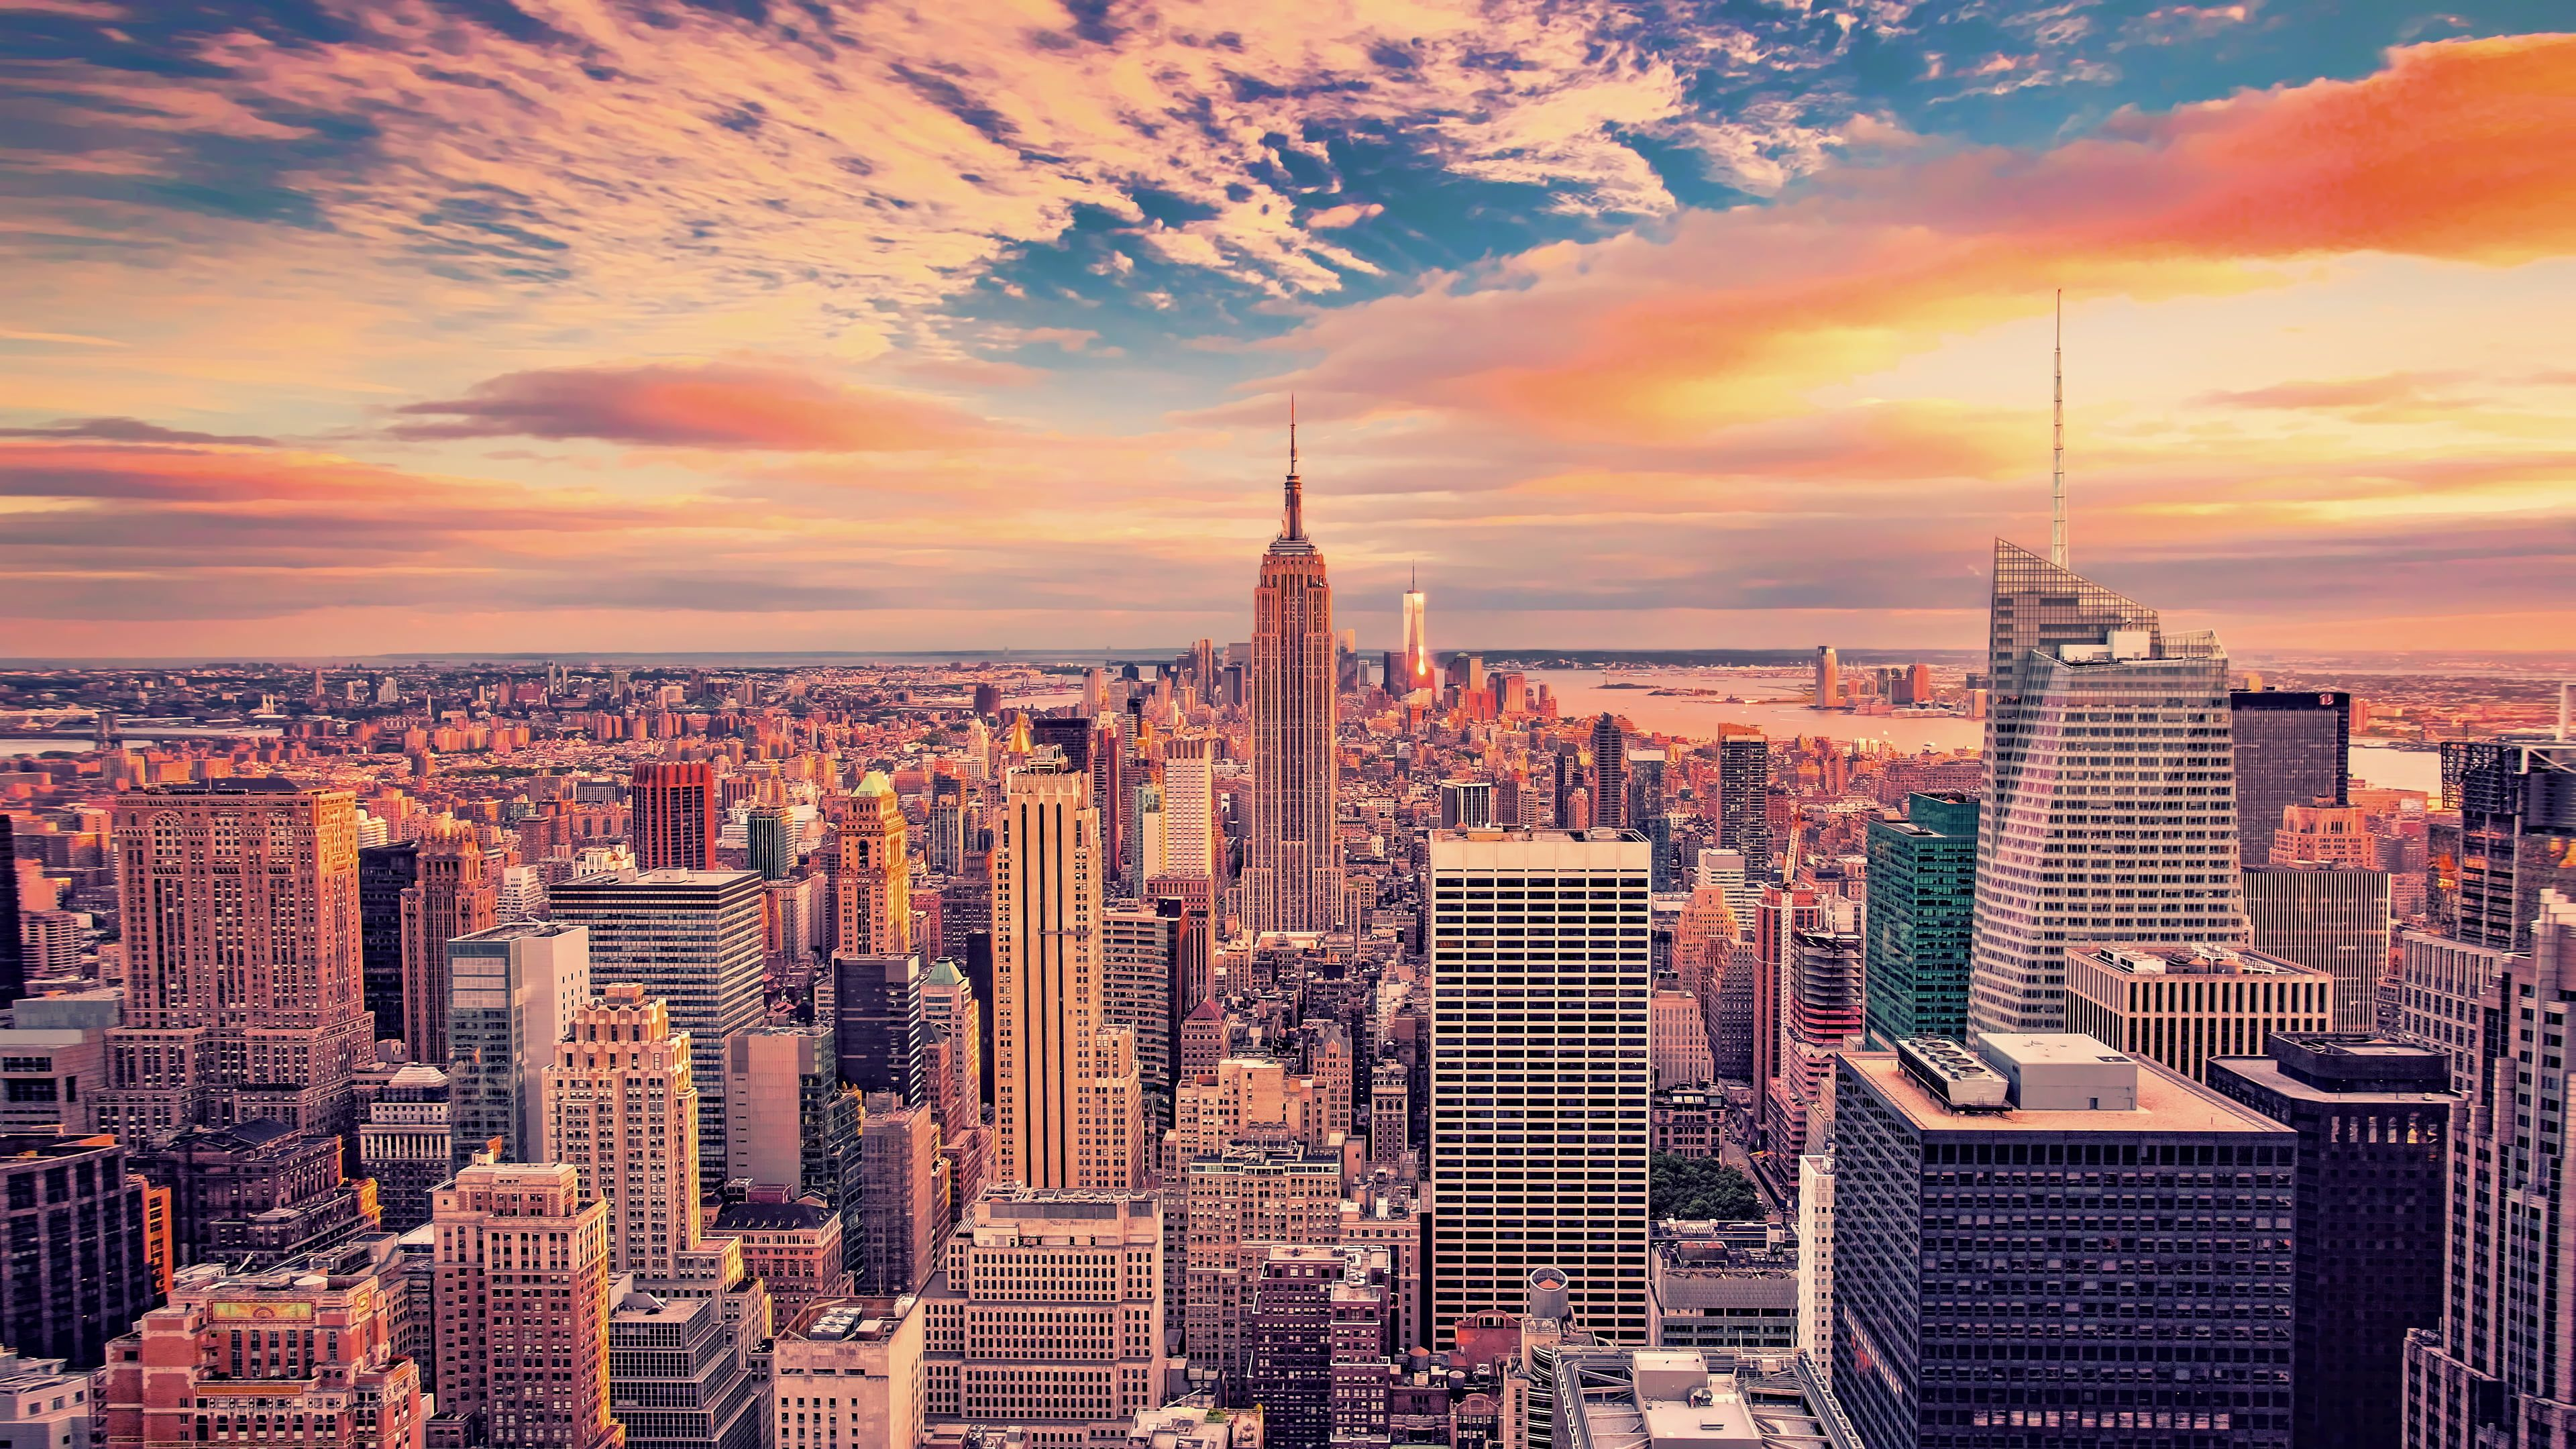 Empire State Building New York Aerial Photography Of Empire Stat Laptop Wallpaper Desktop Wallpapers New York Wallpaper Computer Wallpaper Desktop Wallpapers